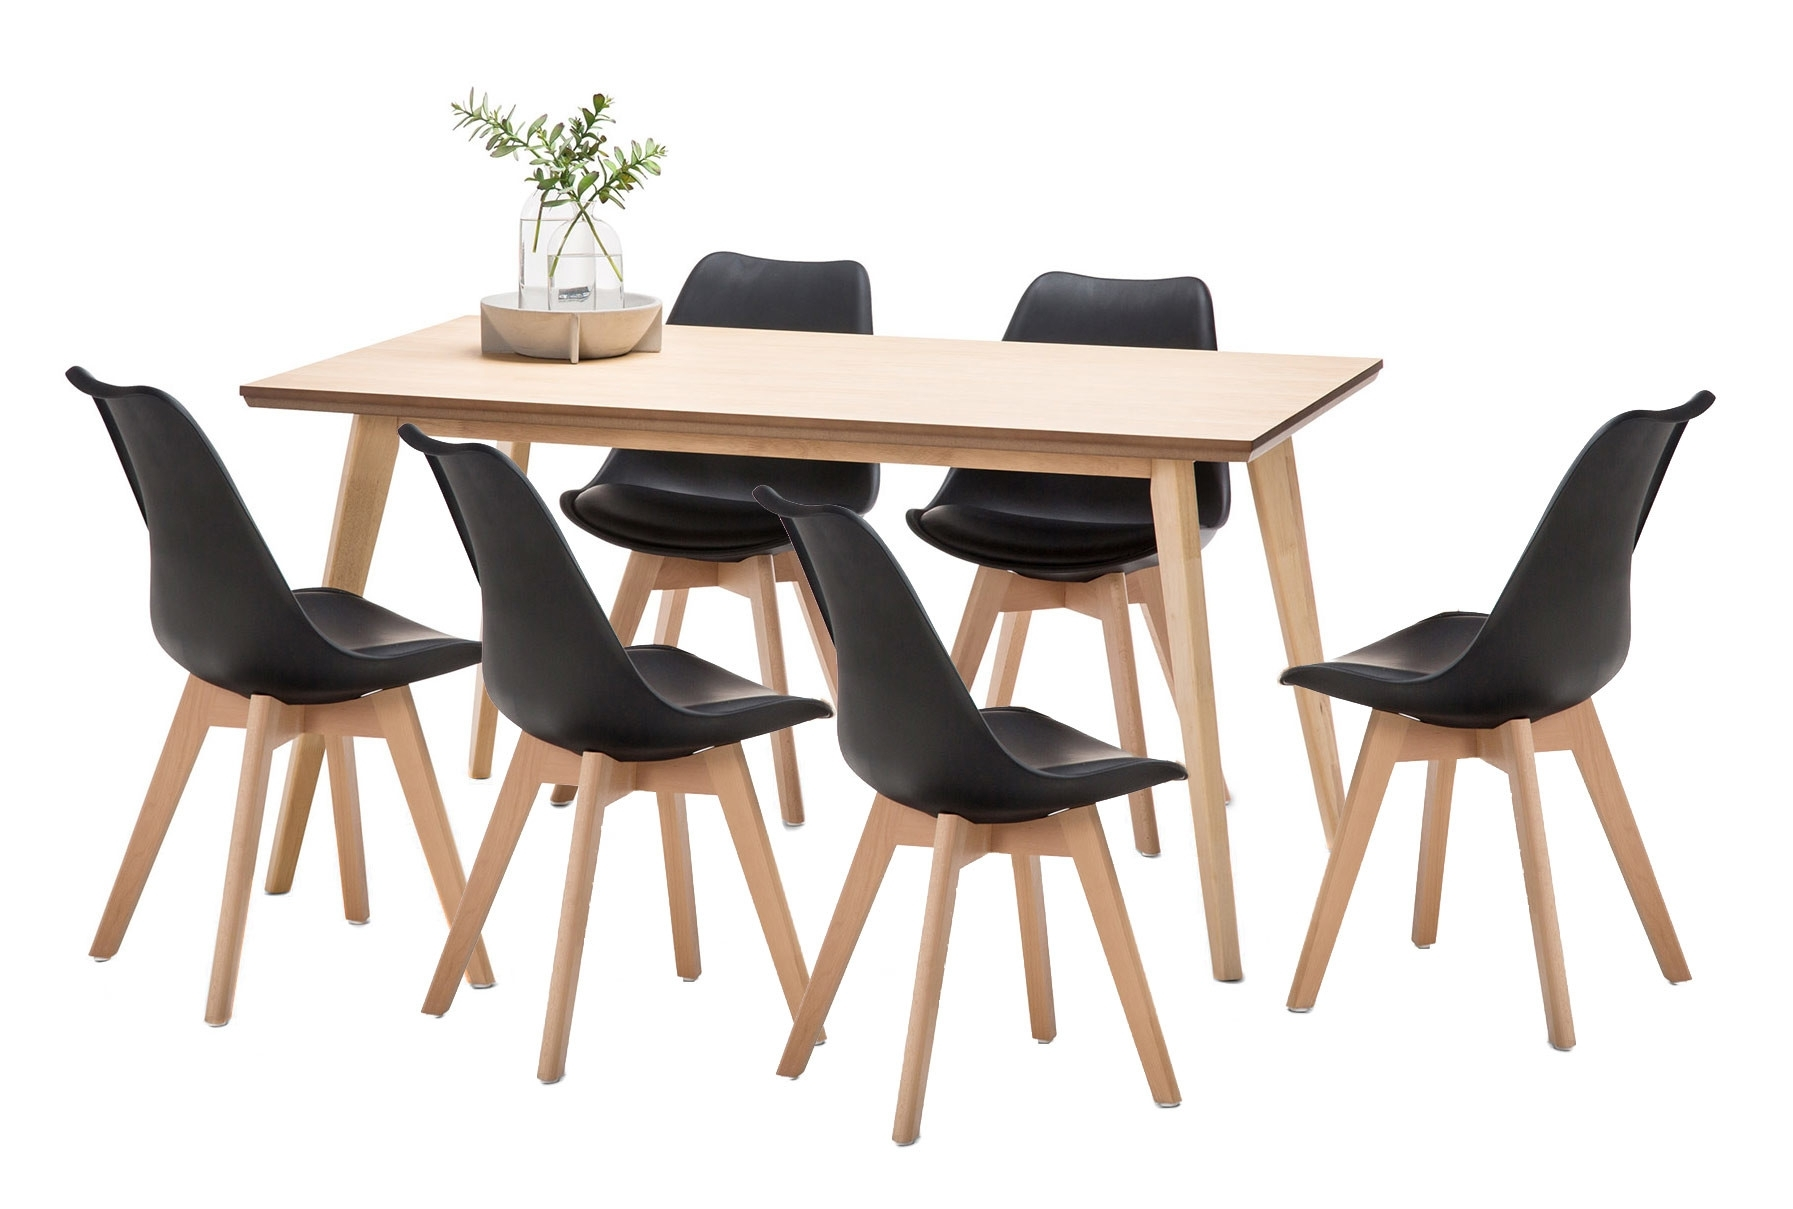 Wyatt Dining Table & 6 Padded Eames Replica Chairs Set | Temple With Most Current Wyatt Dining Tables (View 4 of 20)